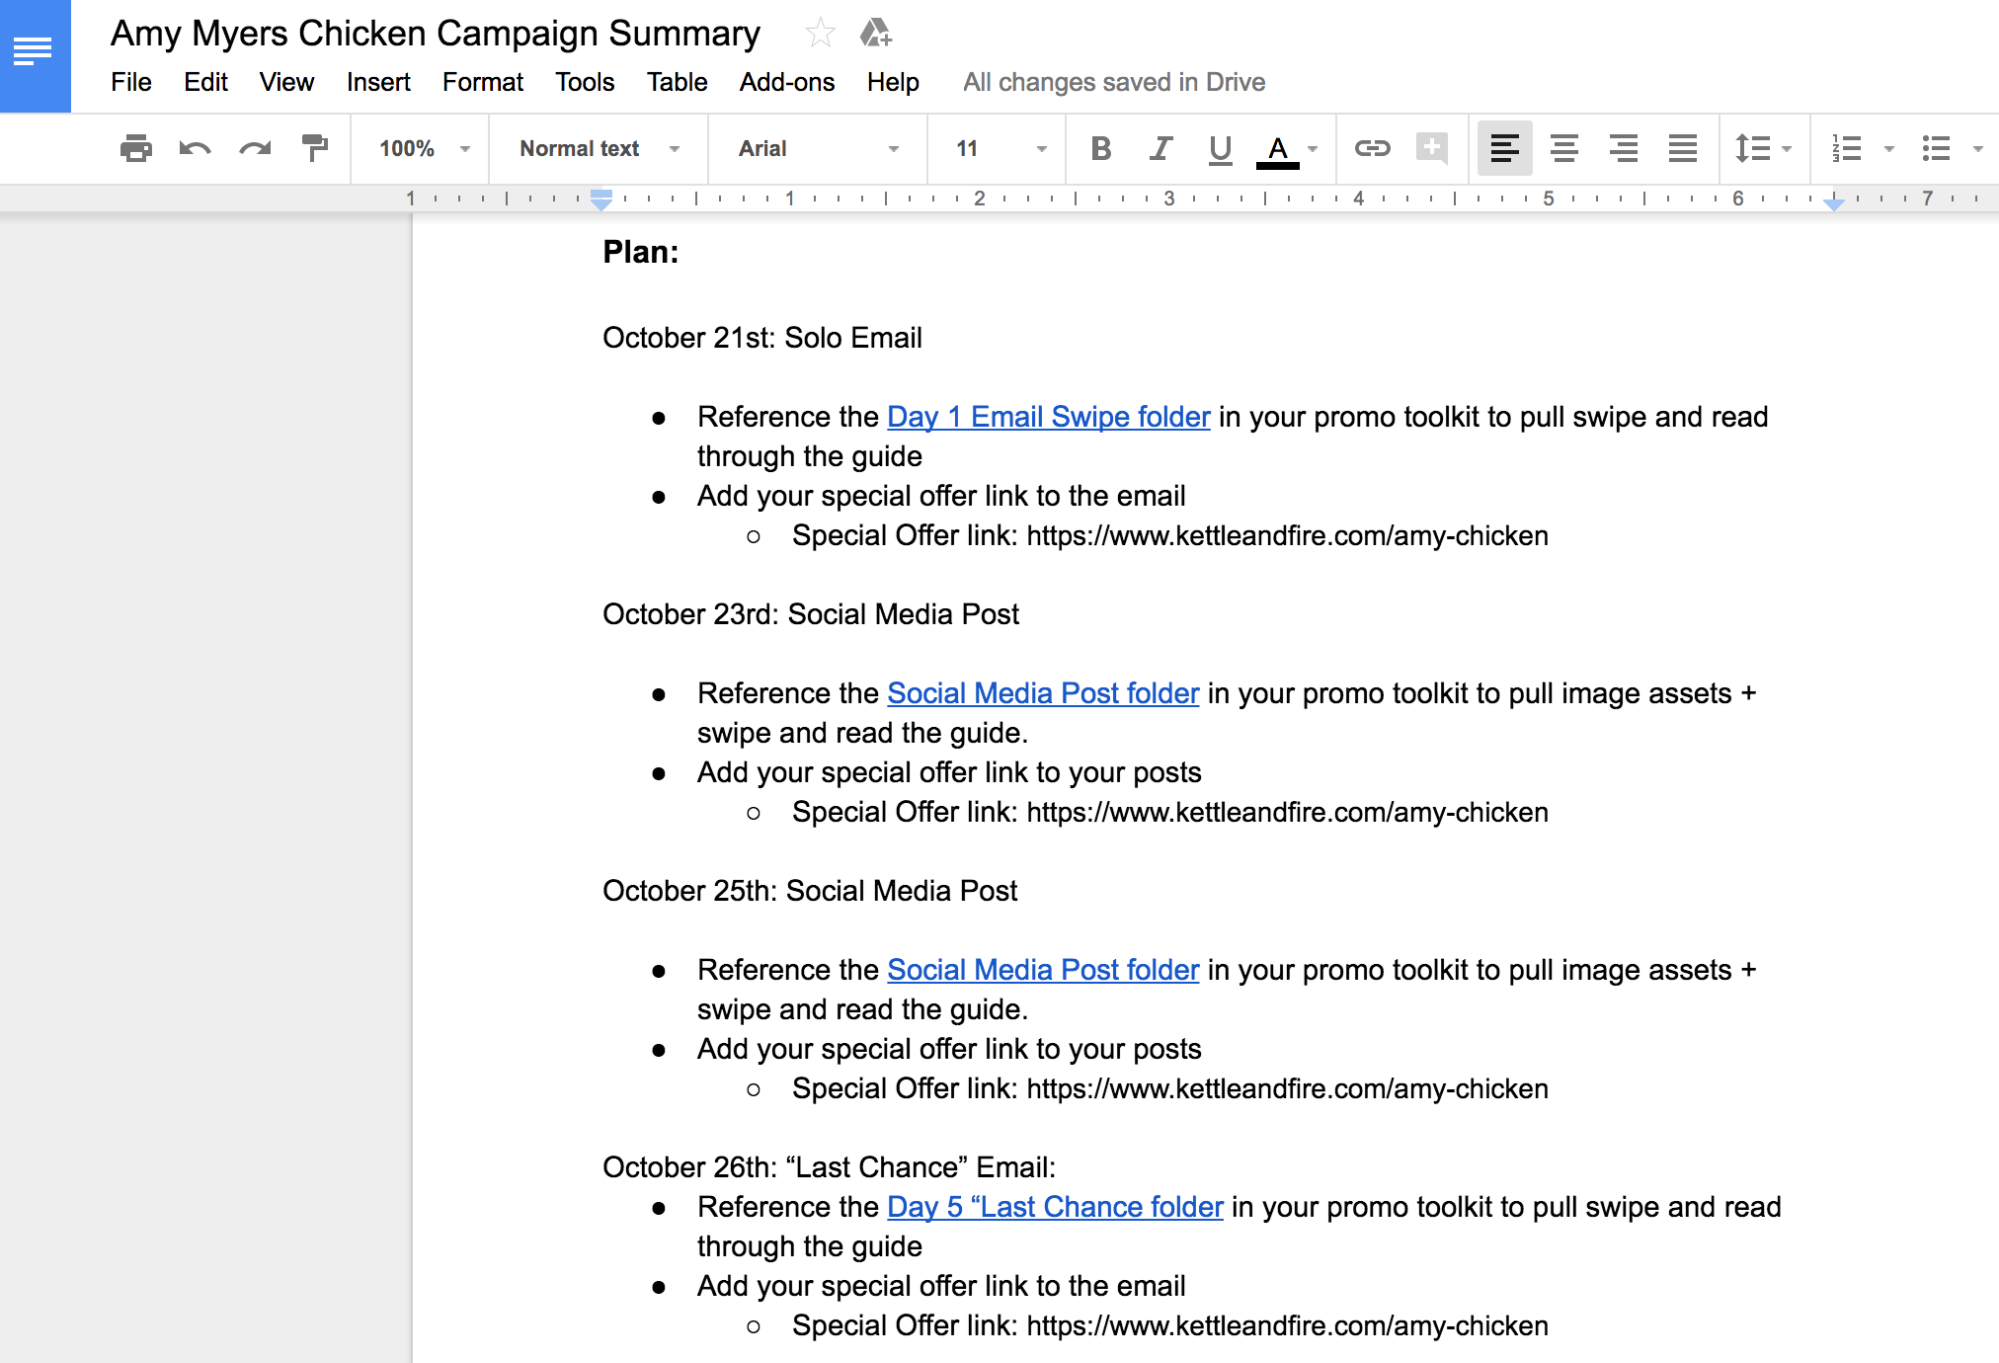 Screenshot showing a google doc